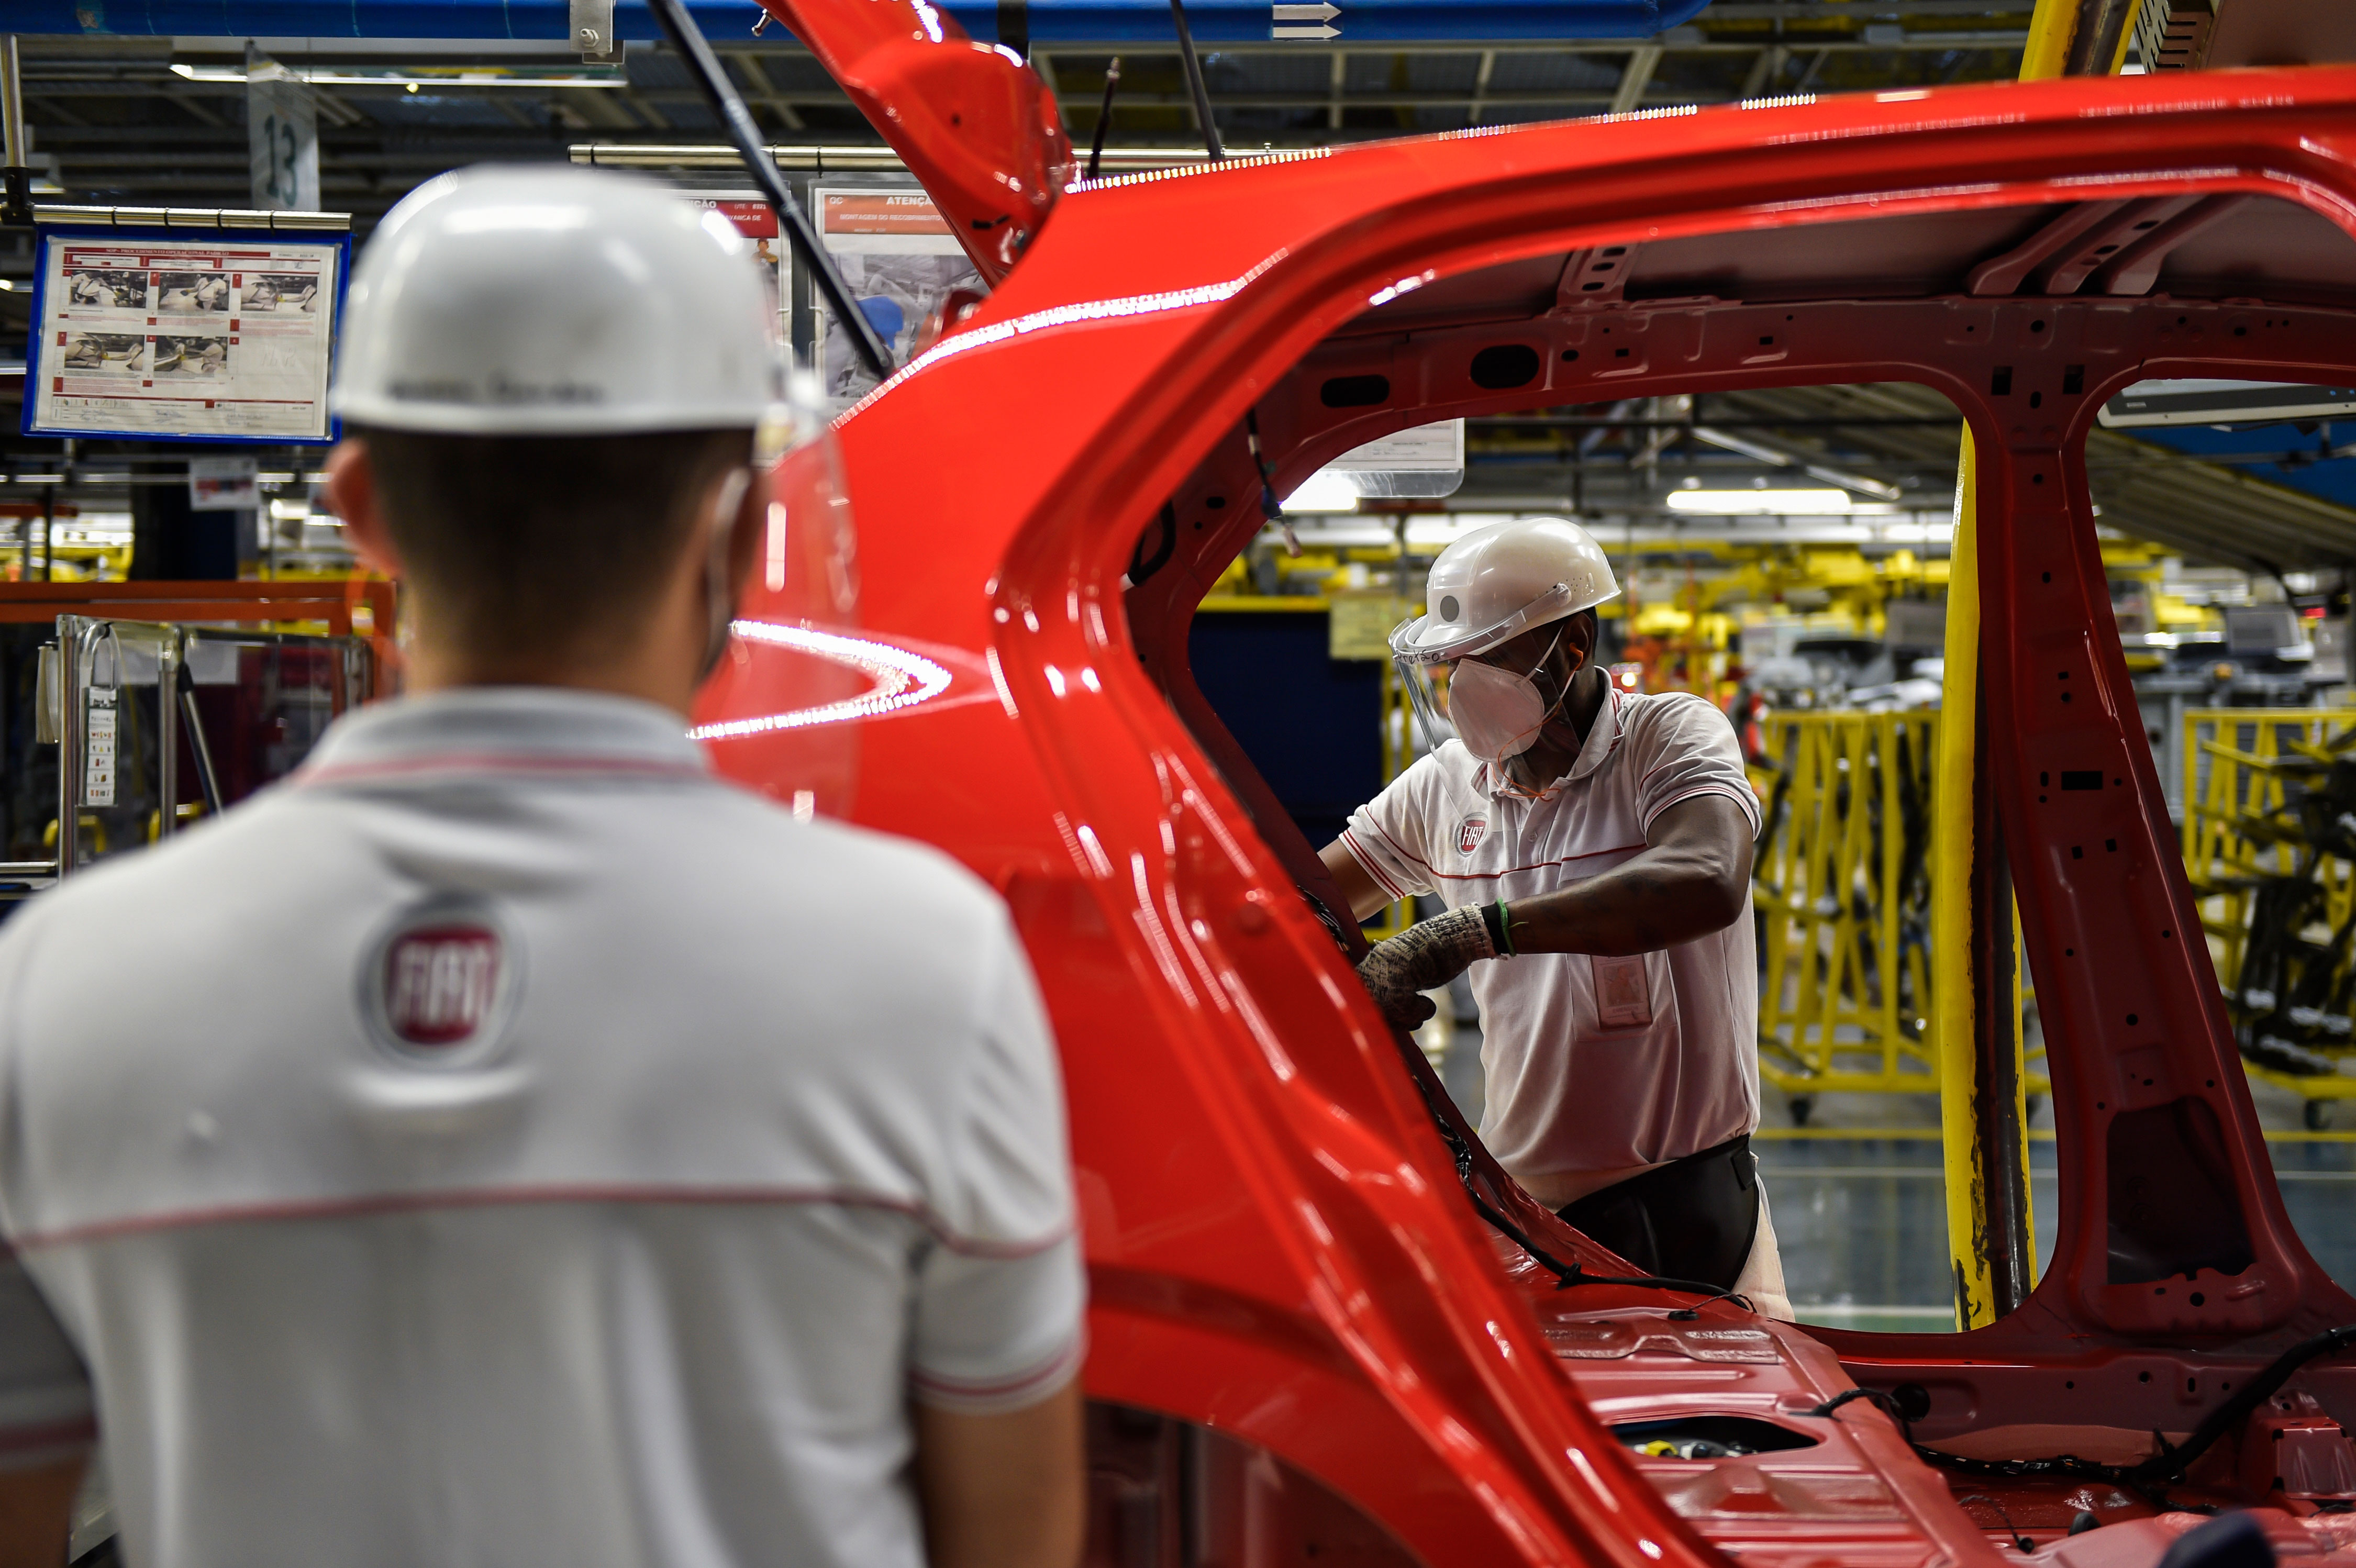 Employees work at the Fiat Chrysler Automobiles plant in Betim, Brazil, on June 10.